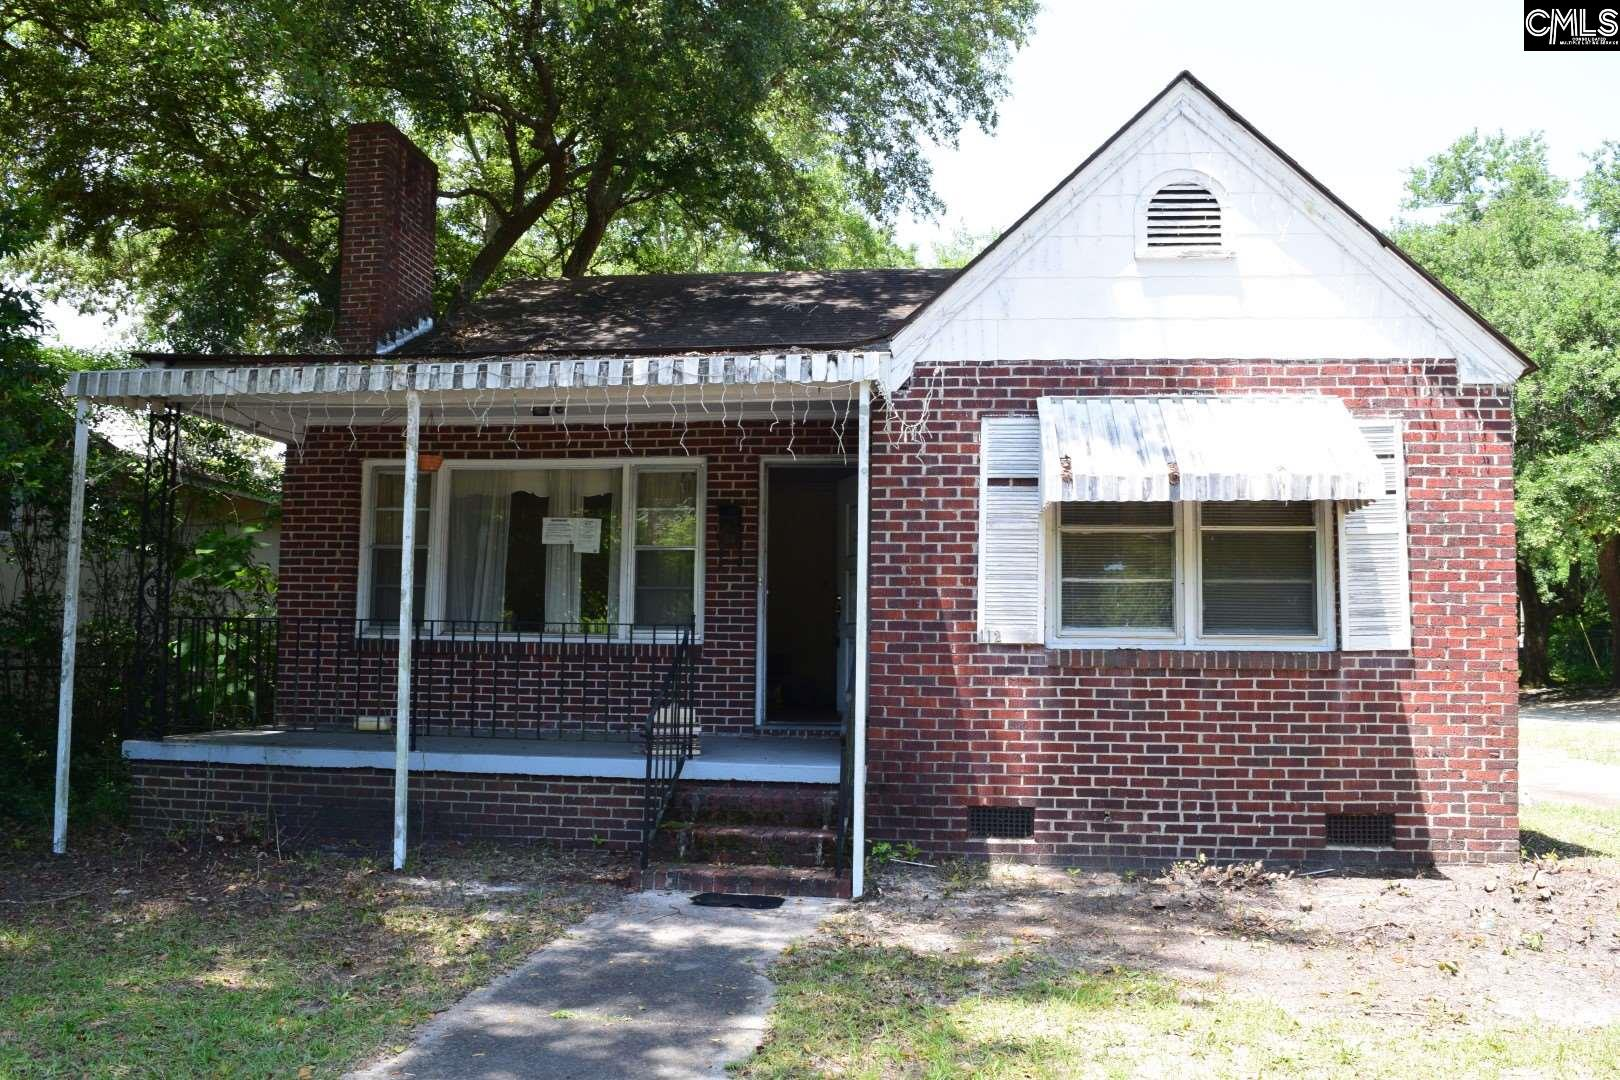 112 S Purdy Sumter, SC 29105